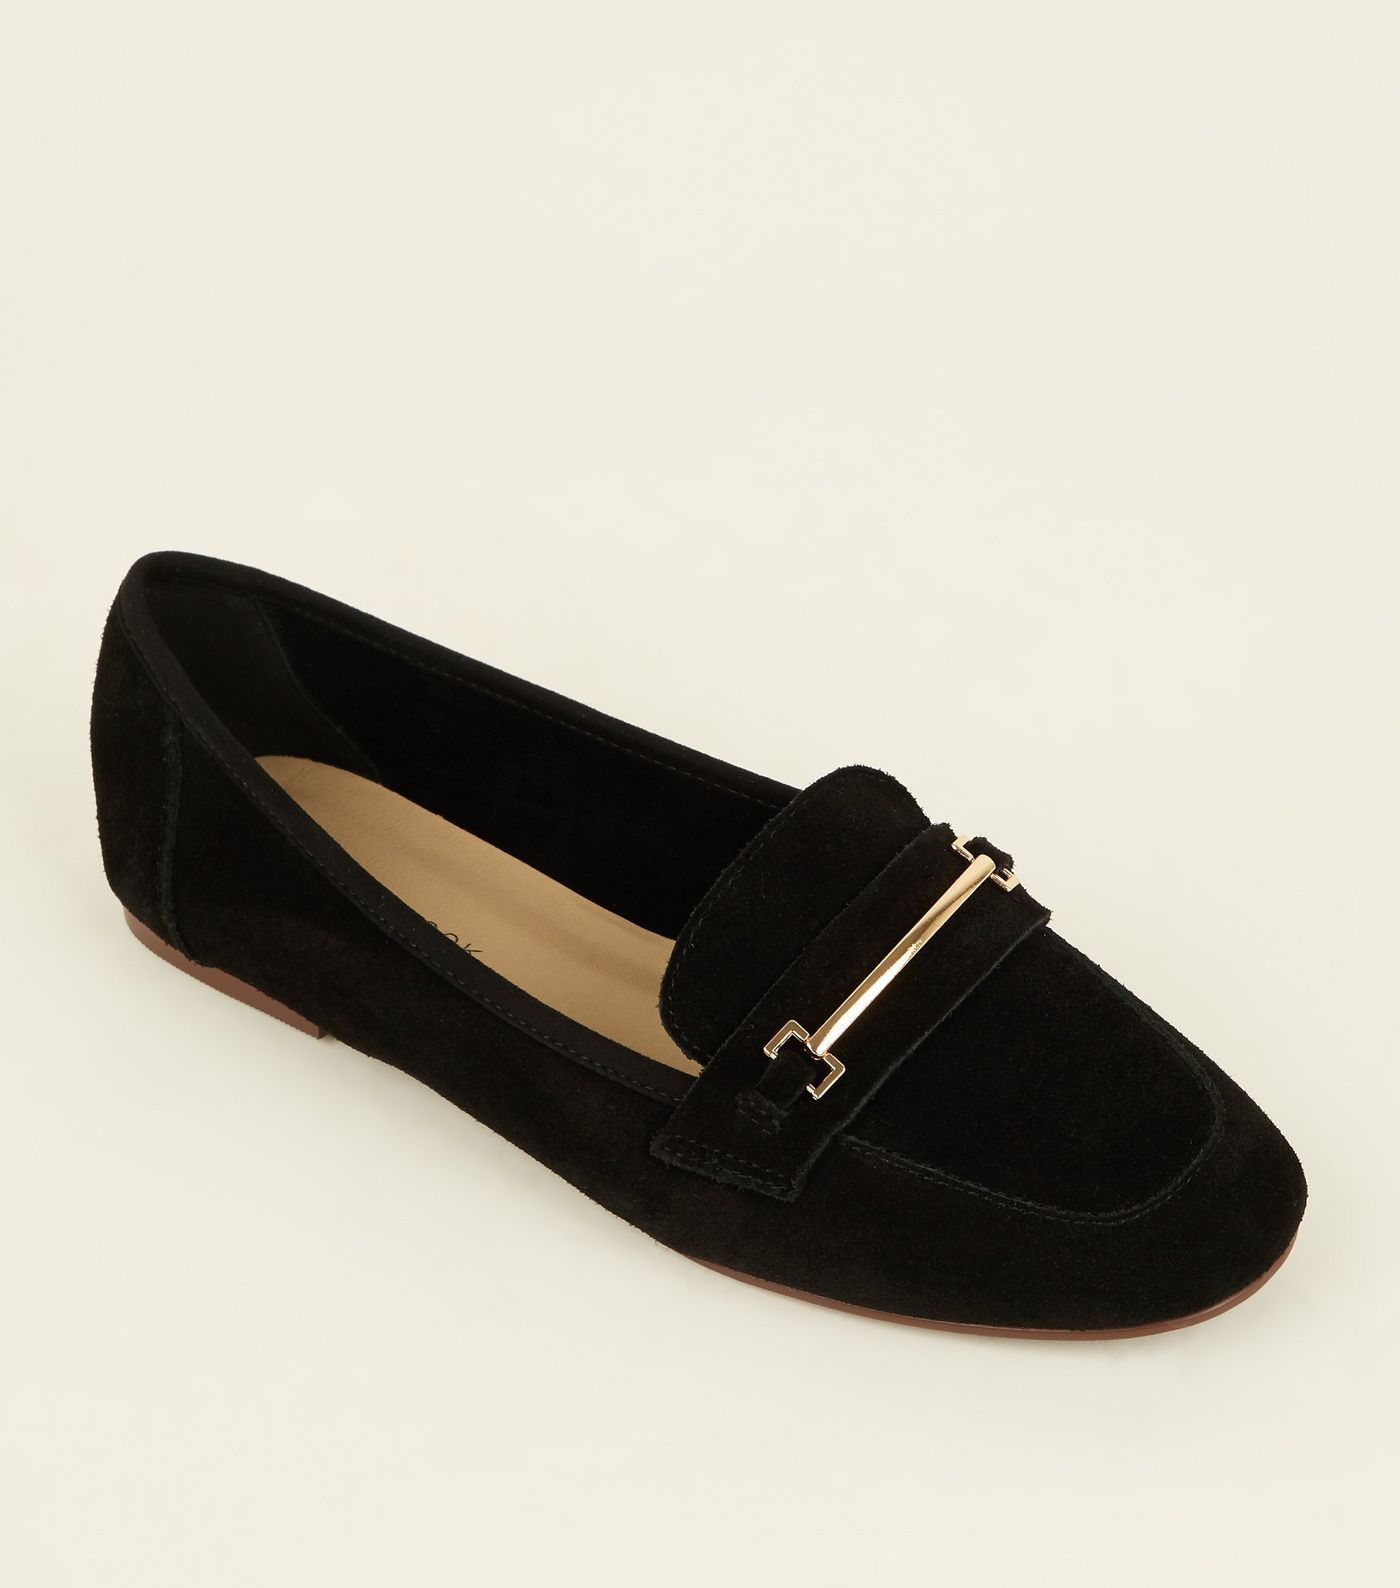 fbefda2b4a46e Black Suede Front Bar Loafers | Shoes and Bags | Loafers, Suede ...